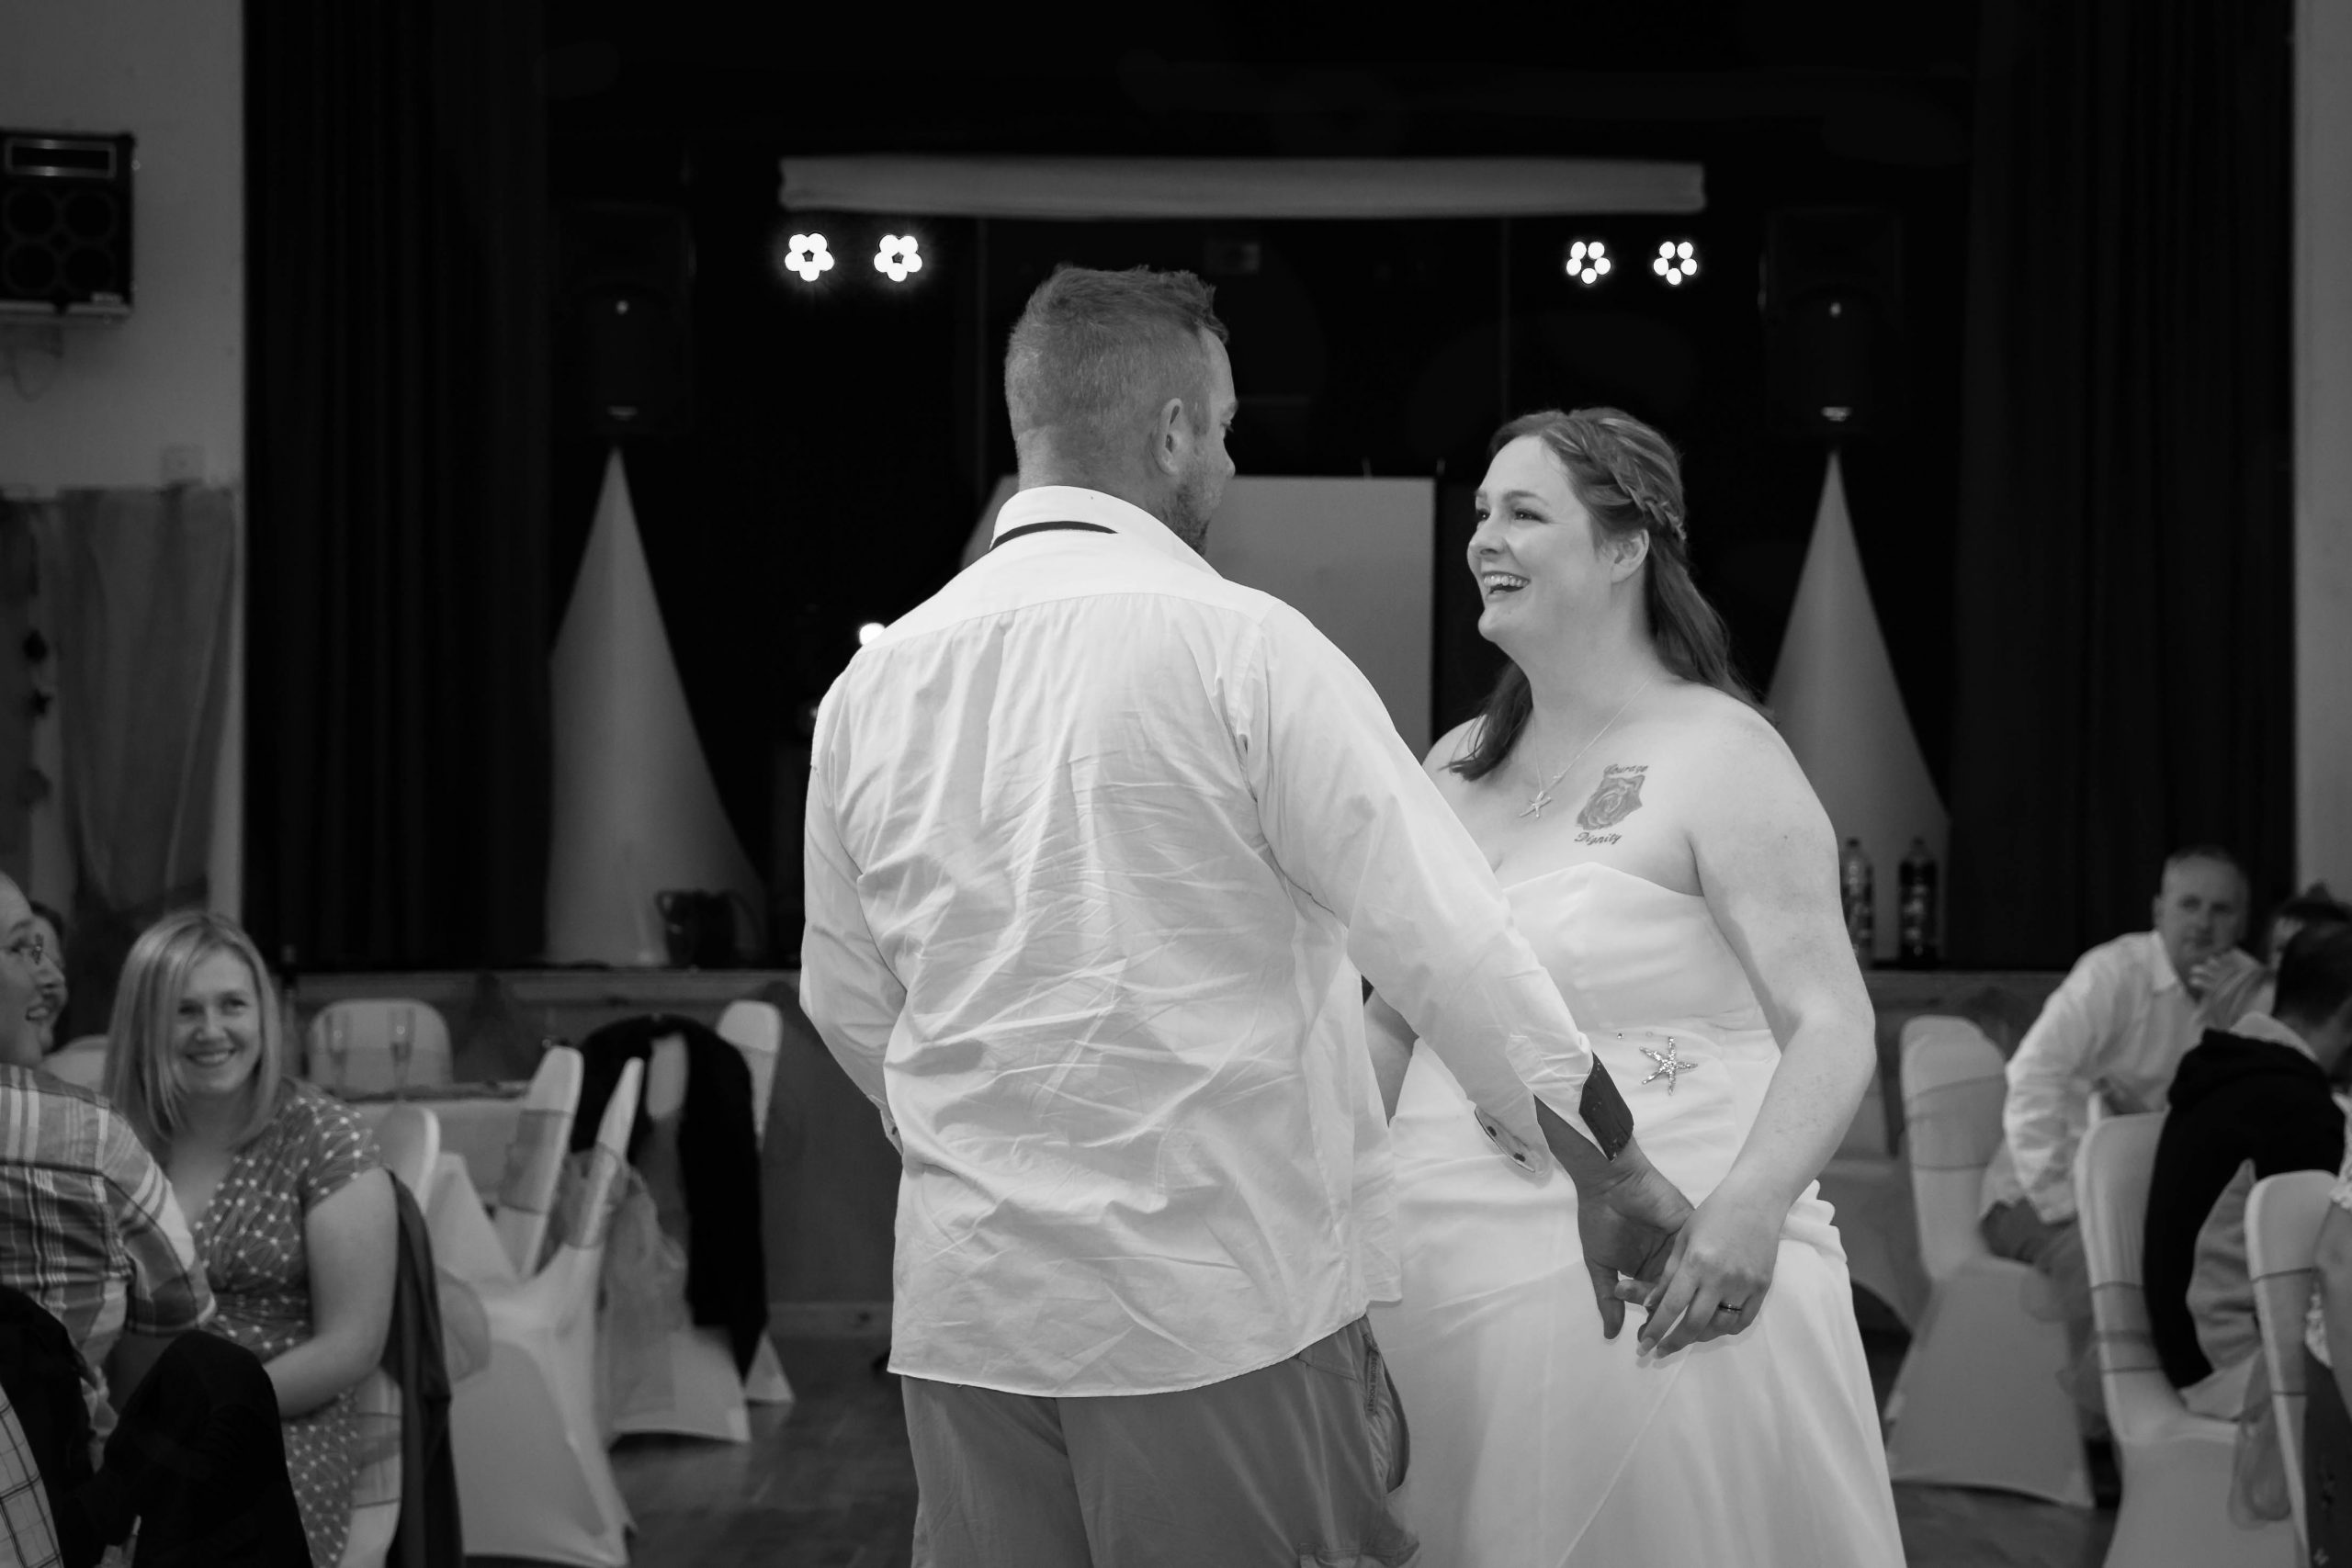 Why have a choreographed first dance?